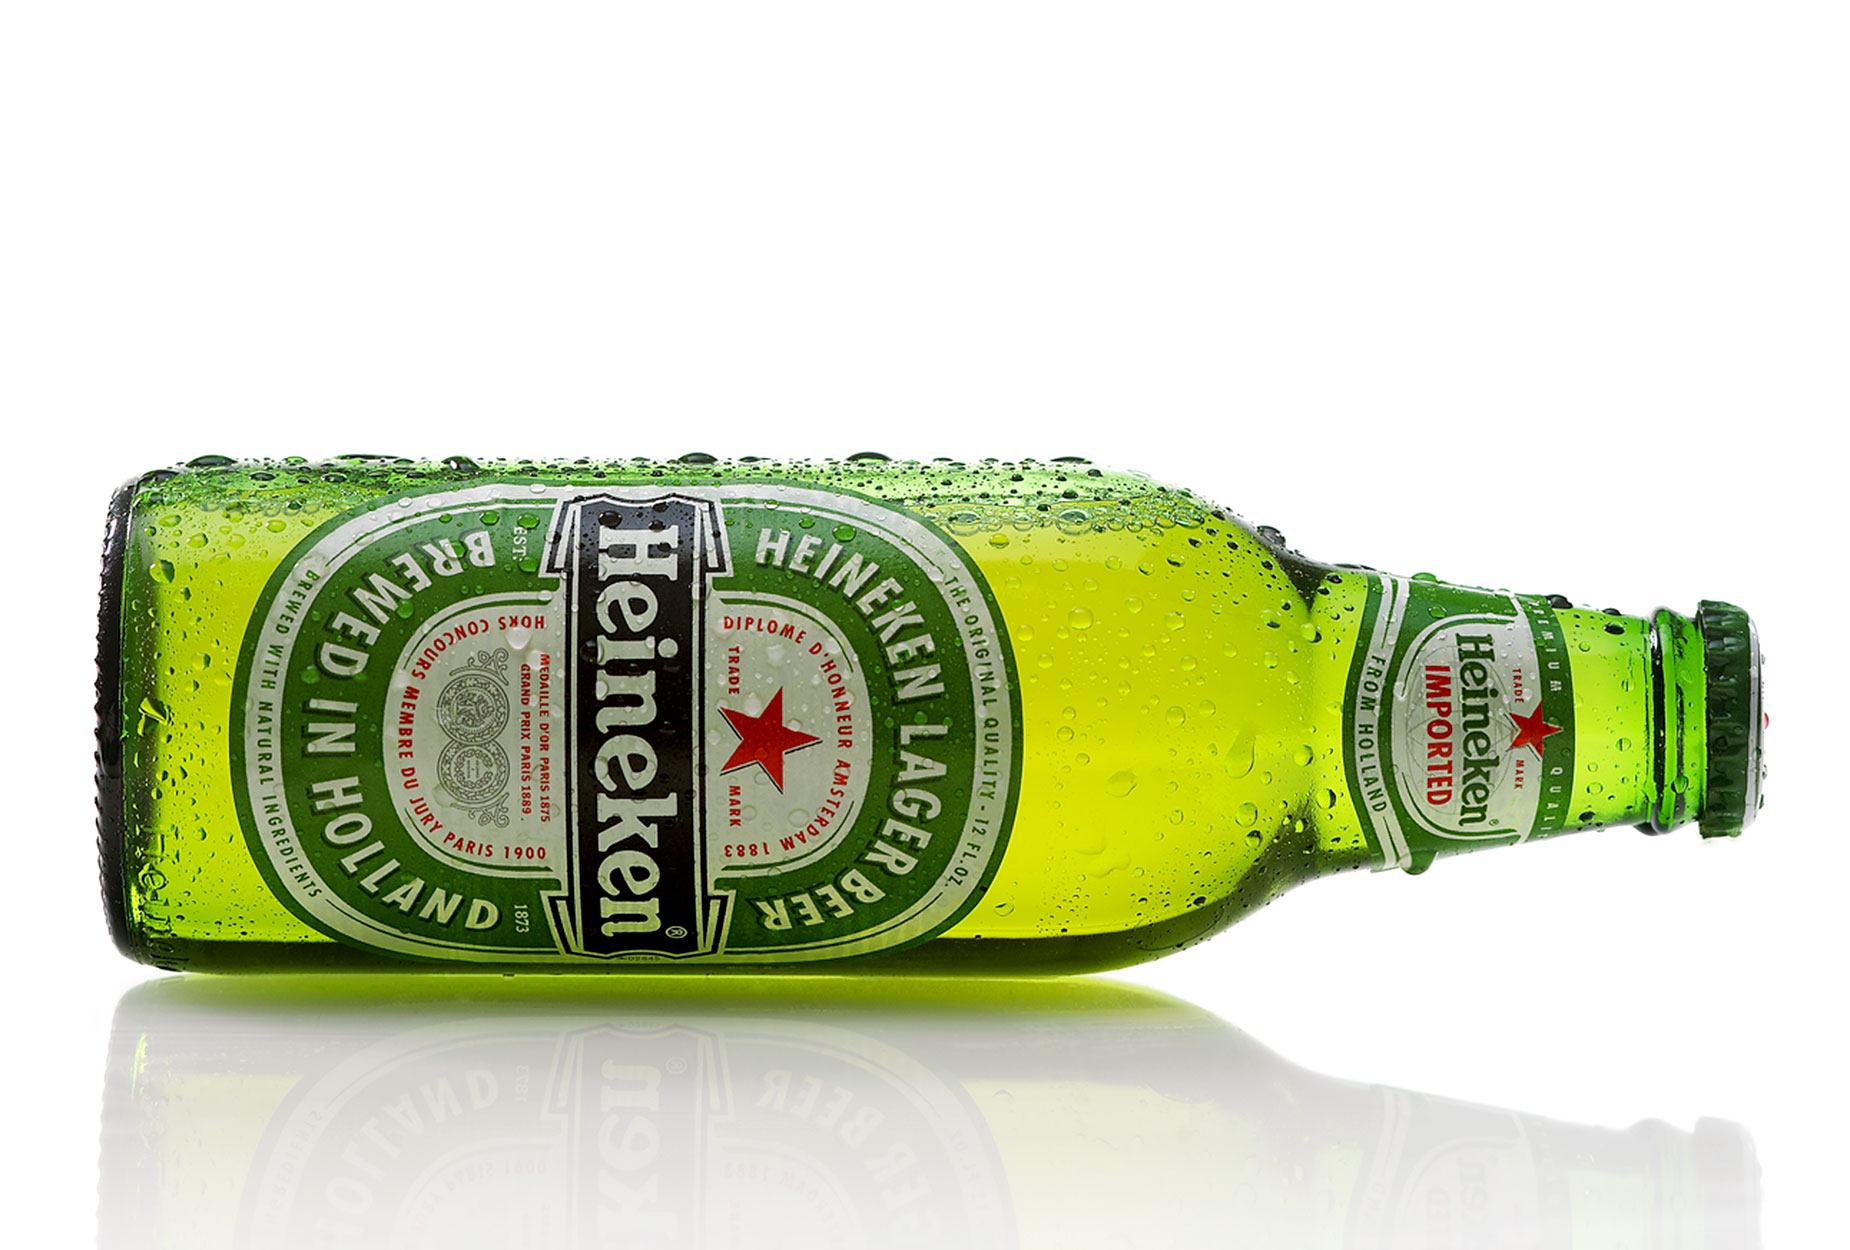 Heineken Beer | Beverage Photographer, Marshall Gordon